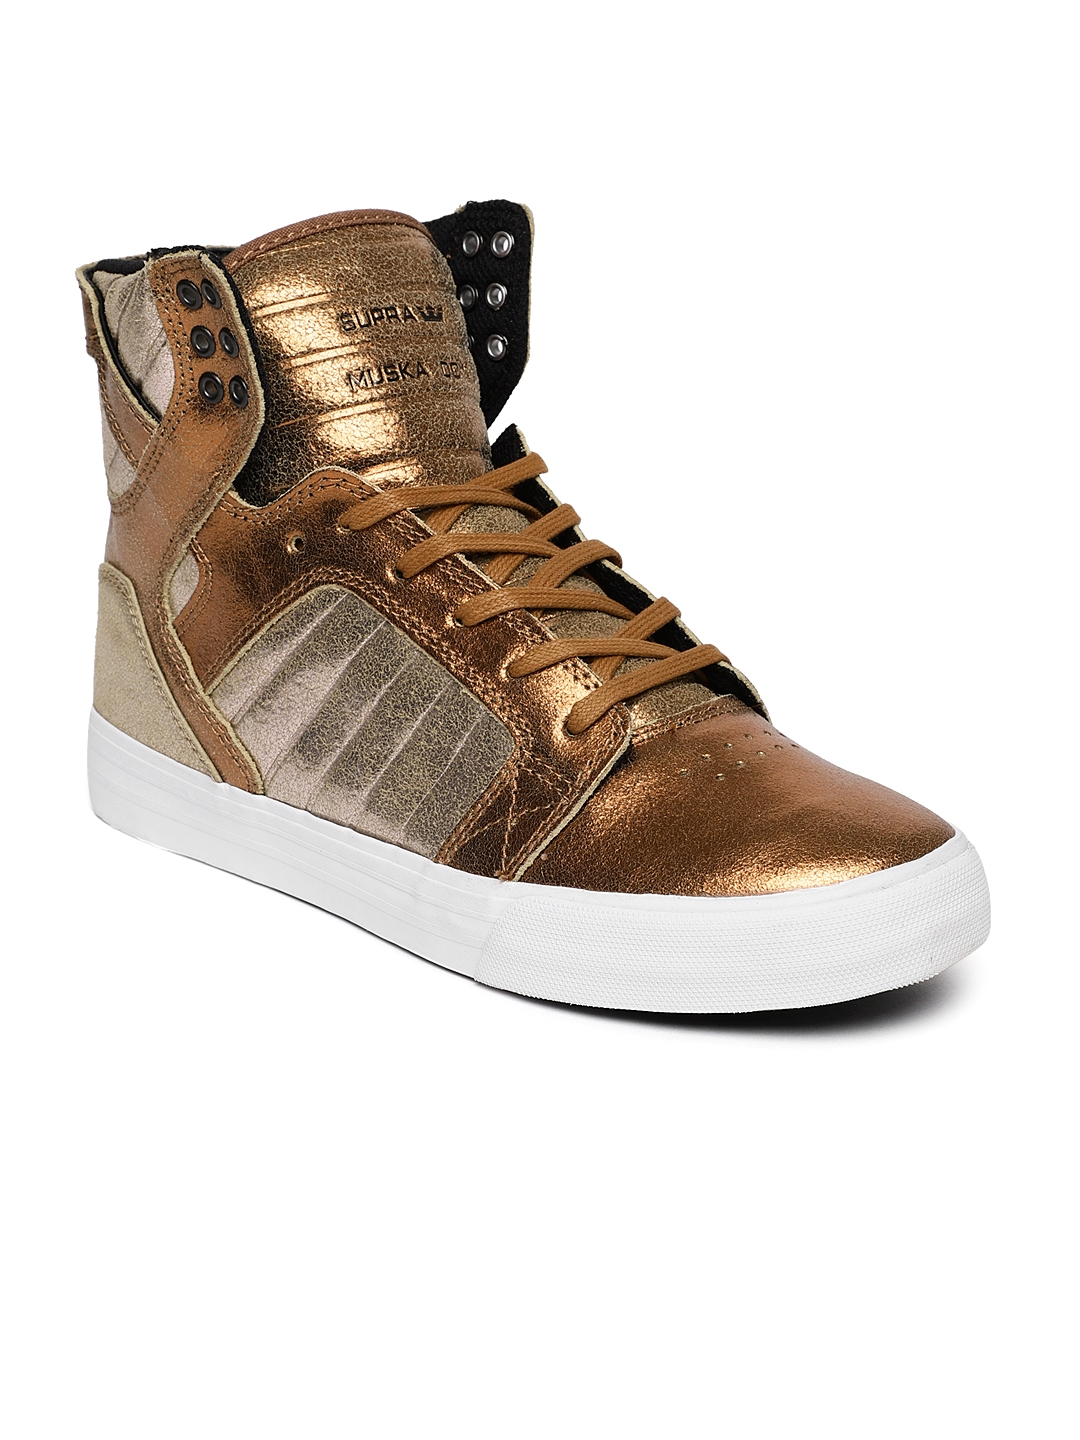 958e38257a24 Supra Women Copper   Rose Gold-Toned Solid SKYTOP High-Top Sneakers